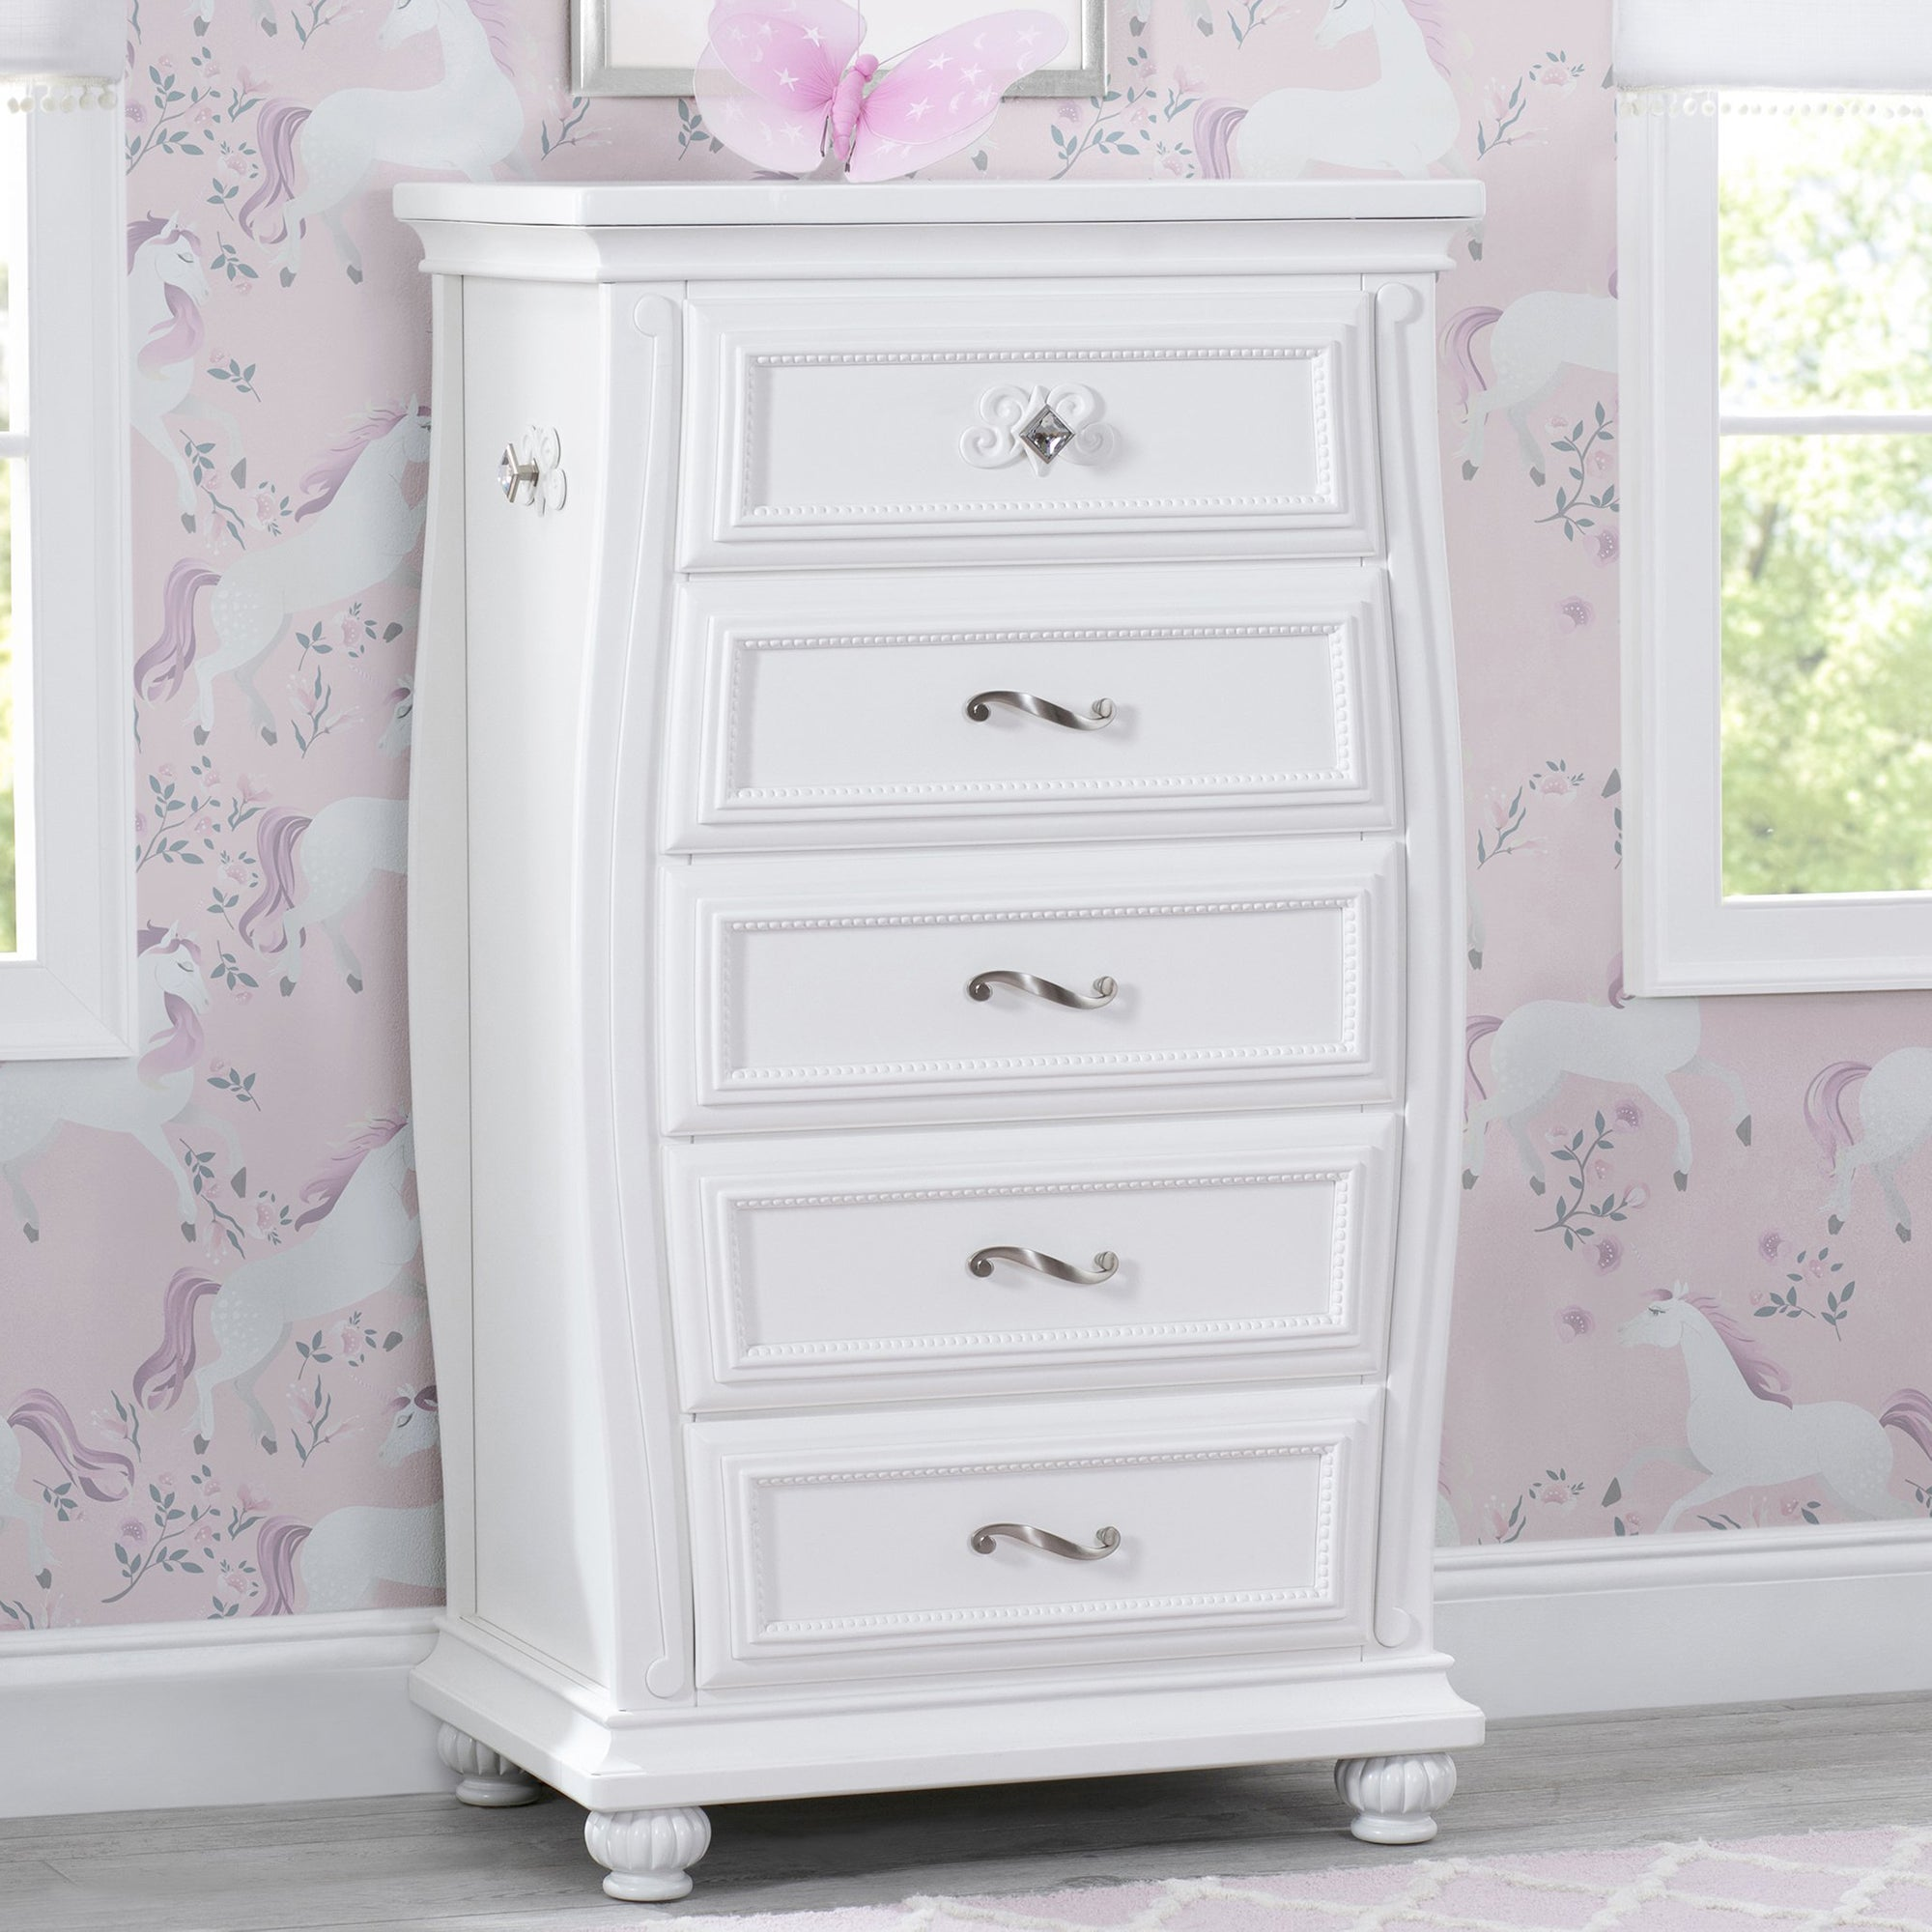 Fairytale 5 Drawer Chest